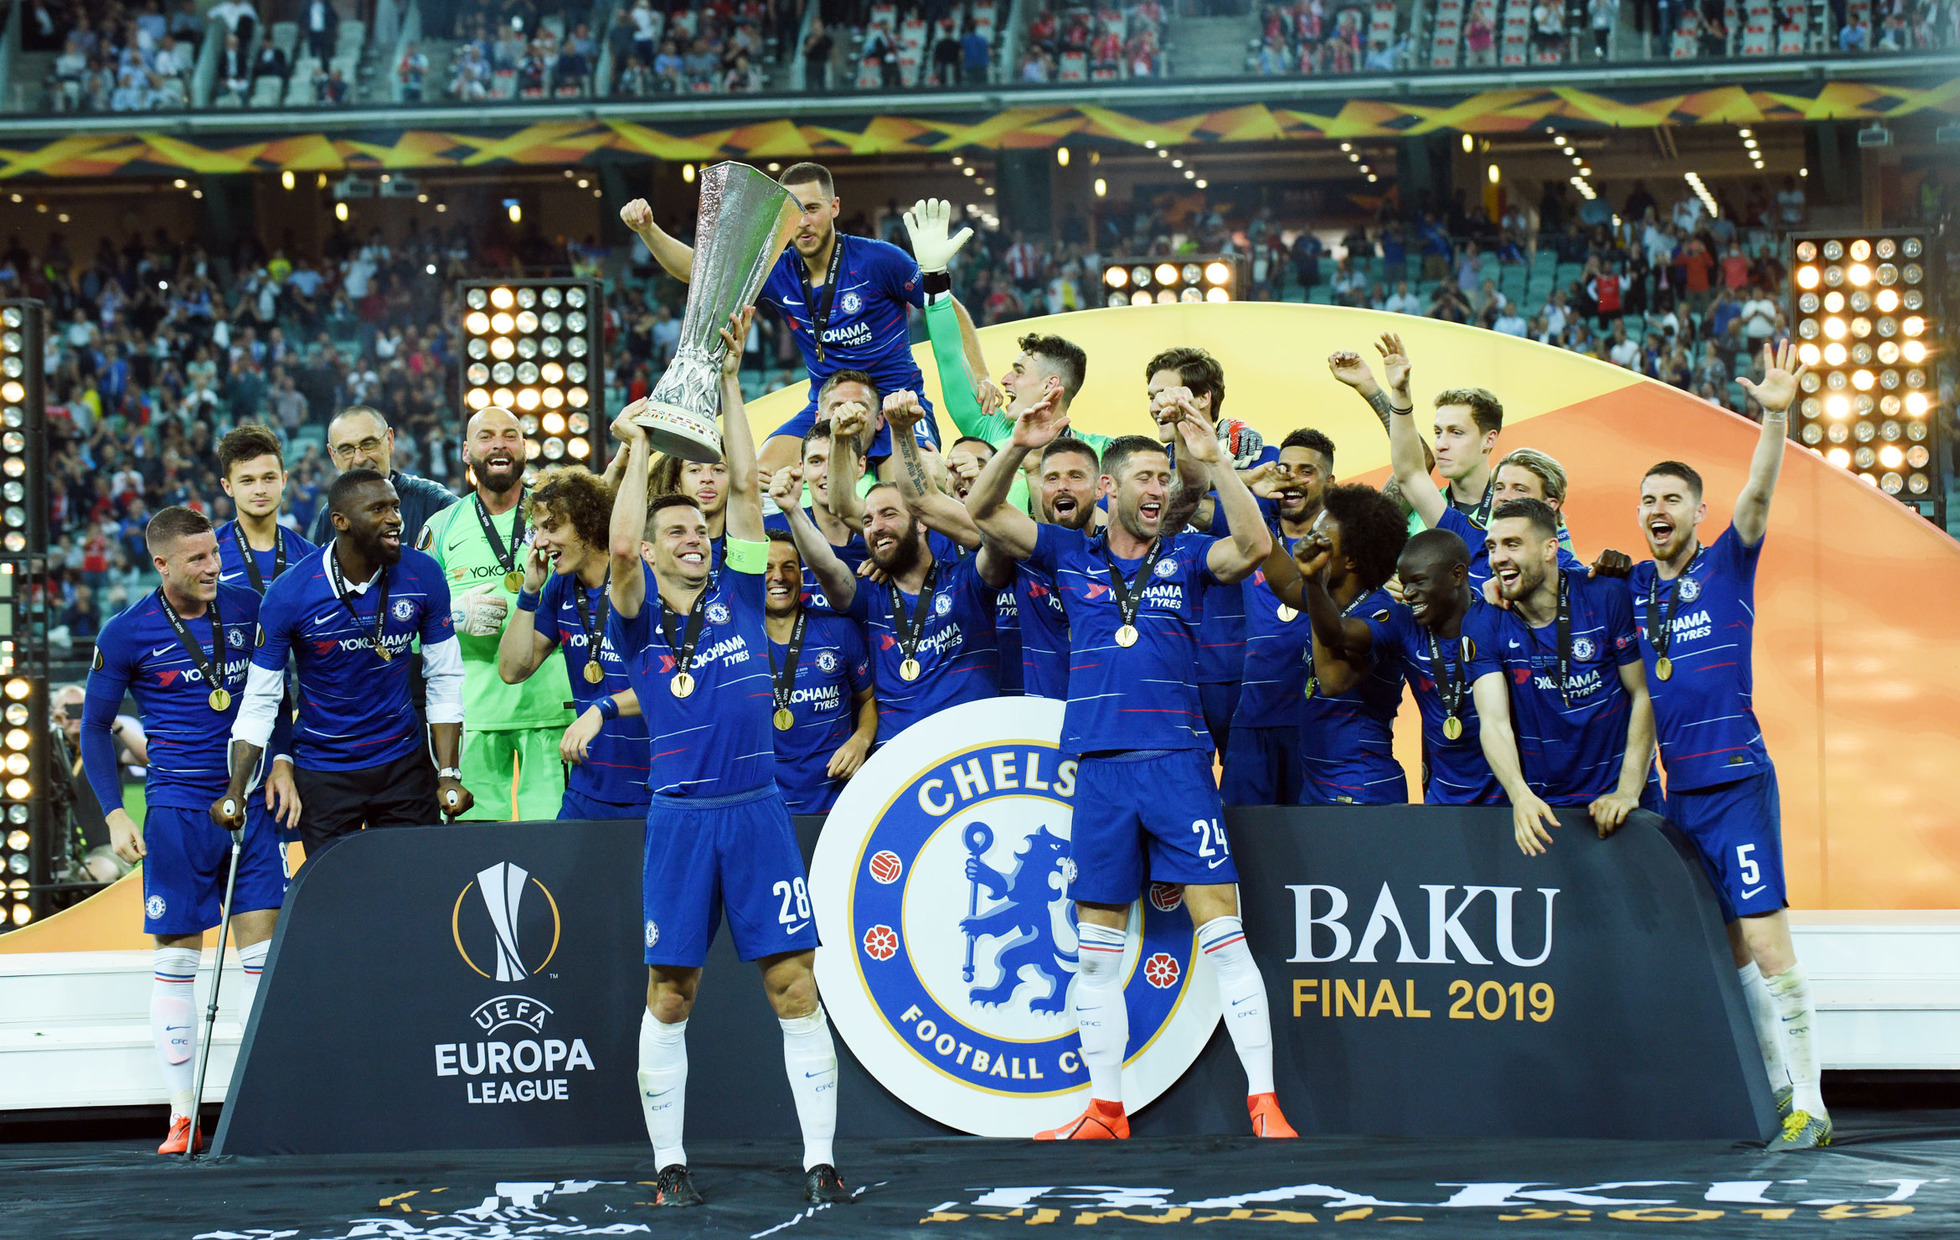 2020 europa league odds to win the title gamingzion gamingzion 2020 europa league odds to win the